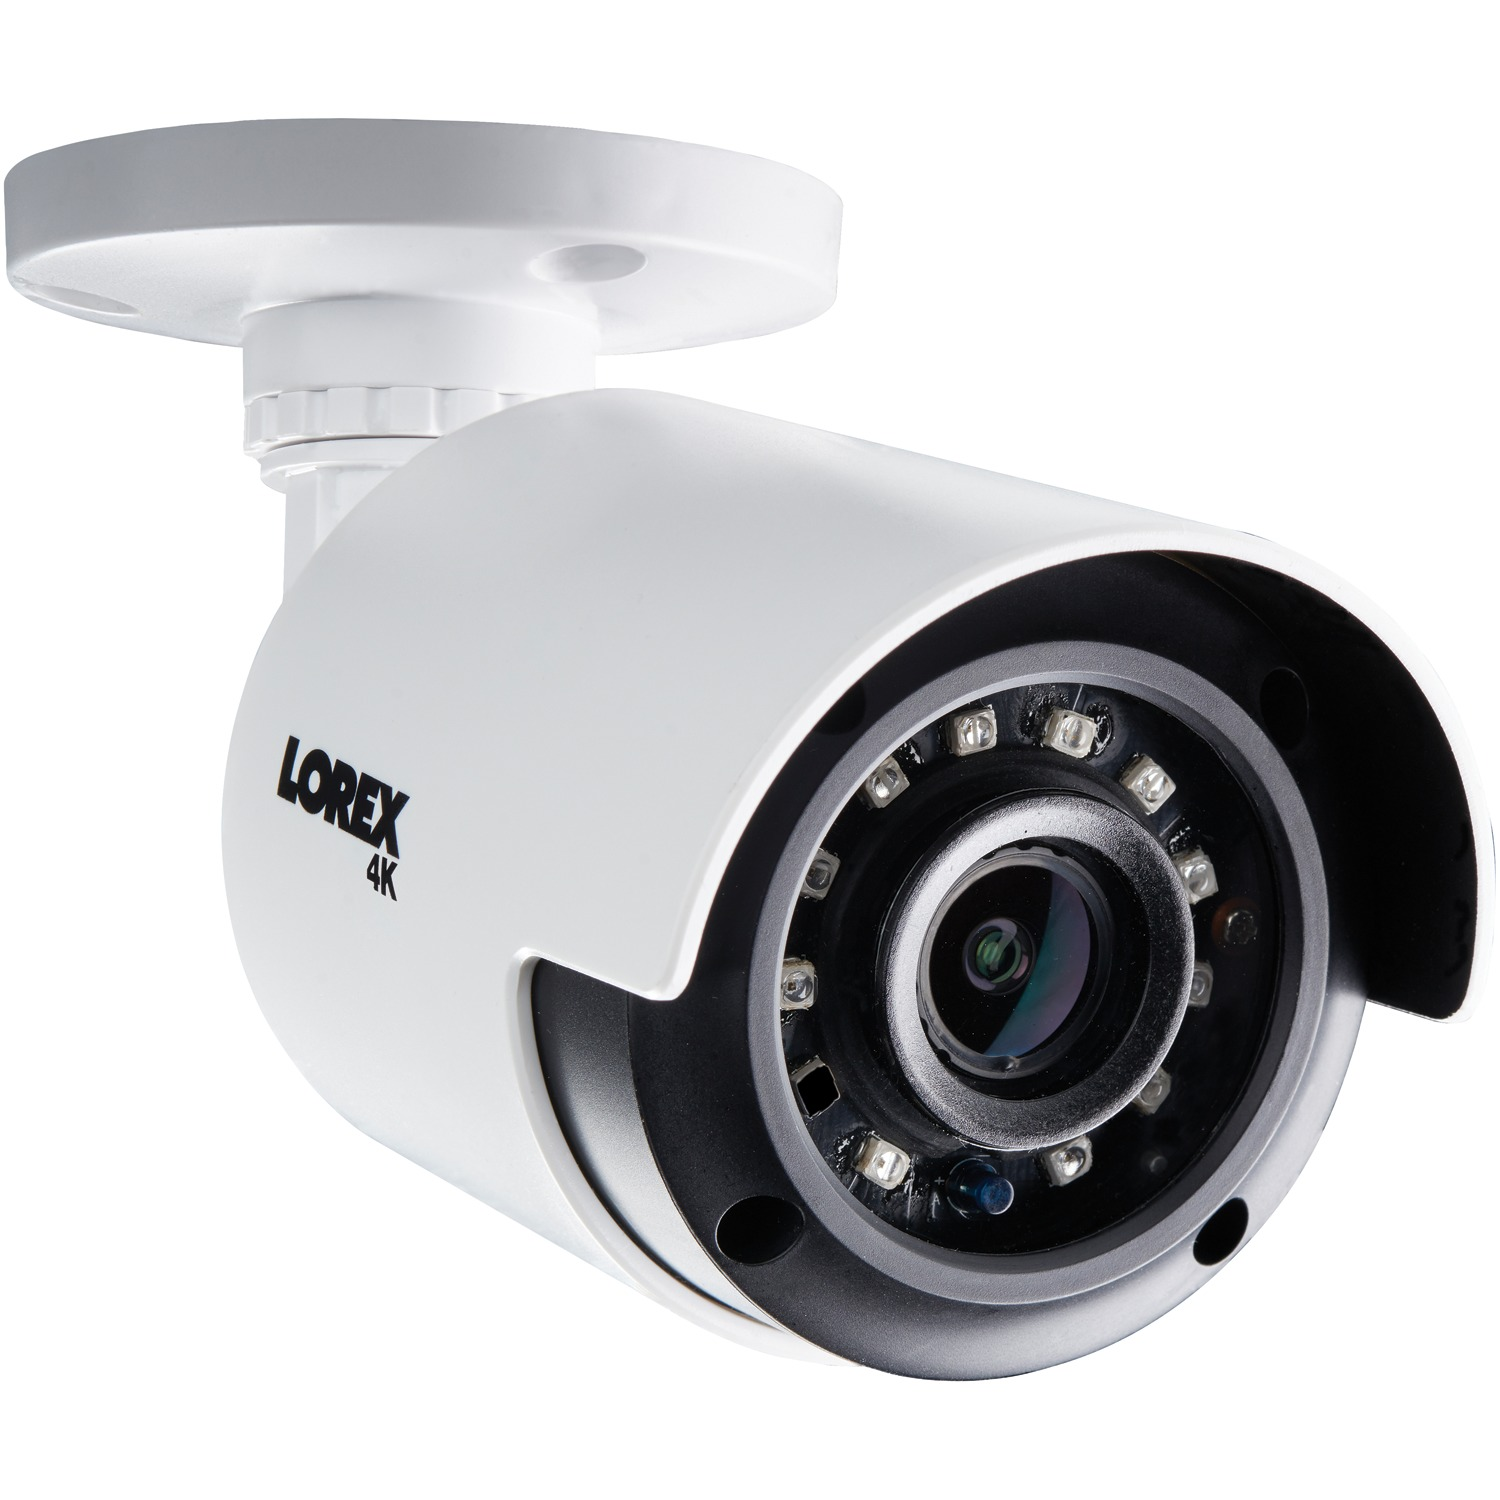 Lorex LBV8531B 4K Ultra HD Bullet Camera for Lorex LHV5000